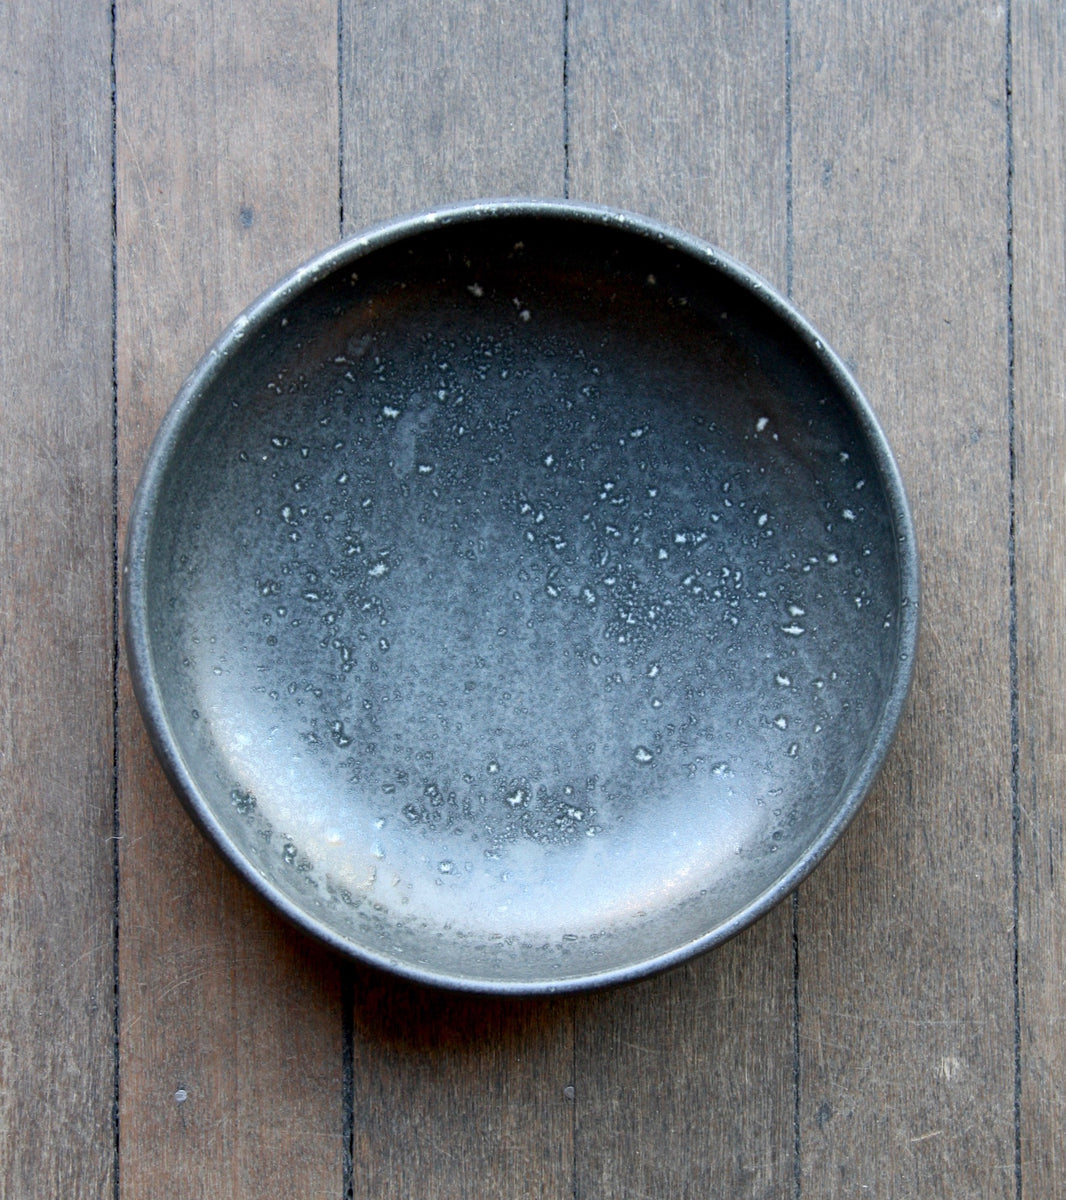 Large Shallow Bowl 13Black & White Glaze Kasper Würtz - Image 4